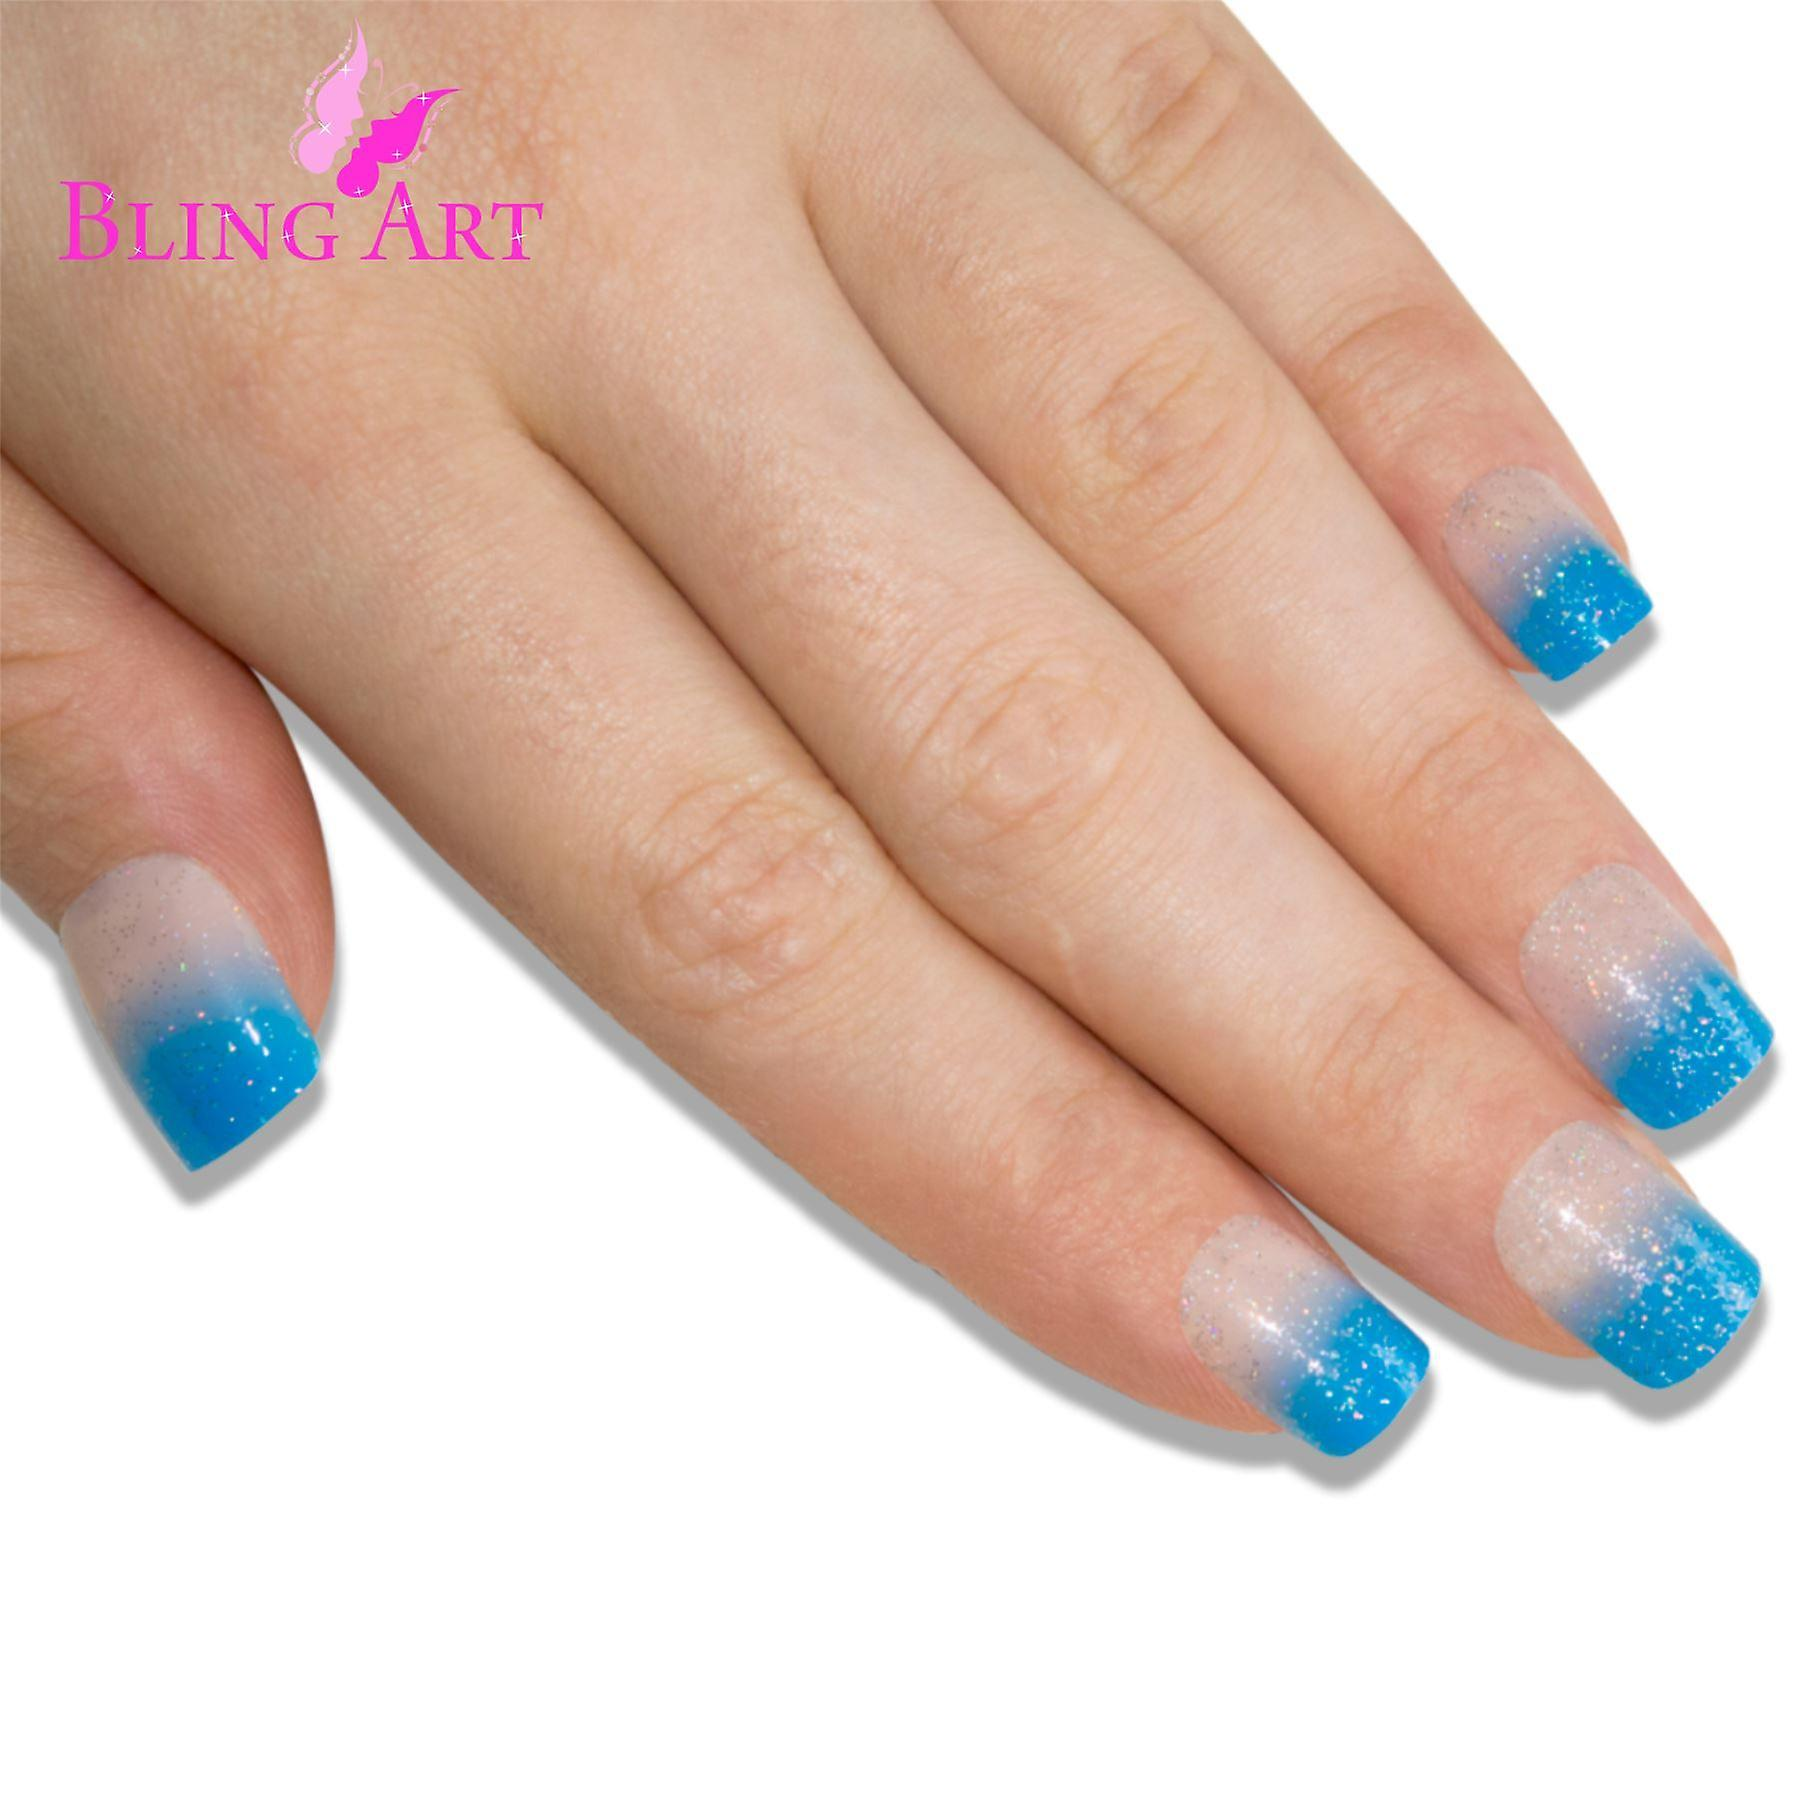 False nails by bling art blue sparkle french manicure fake medium tips with glue